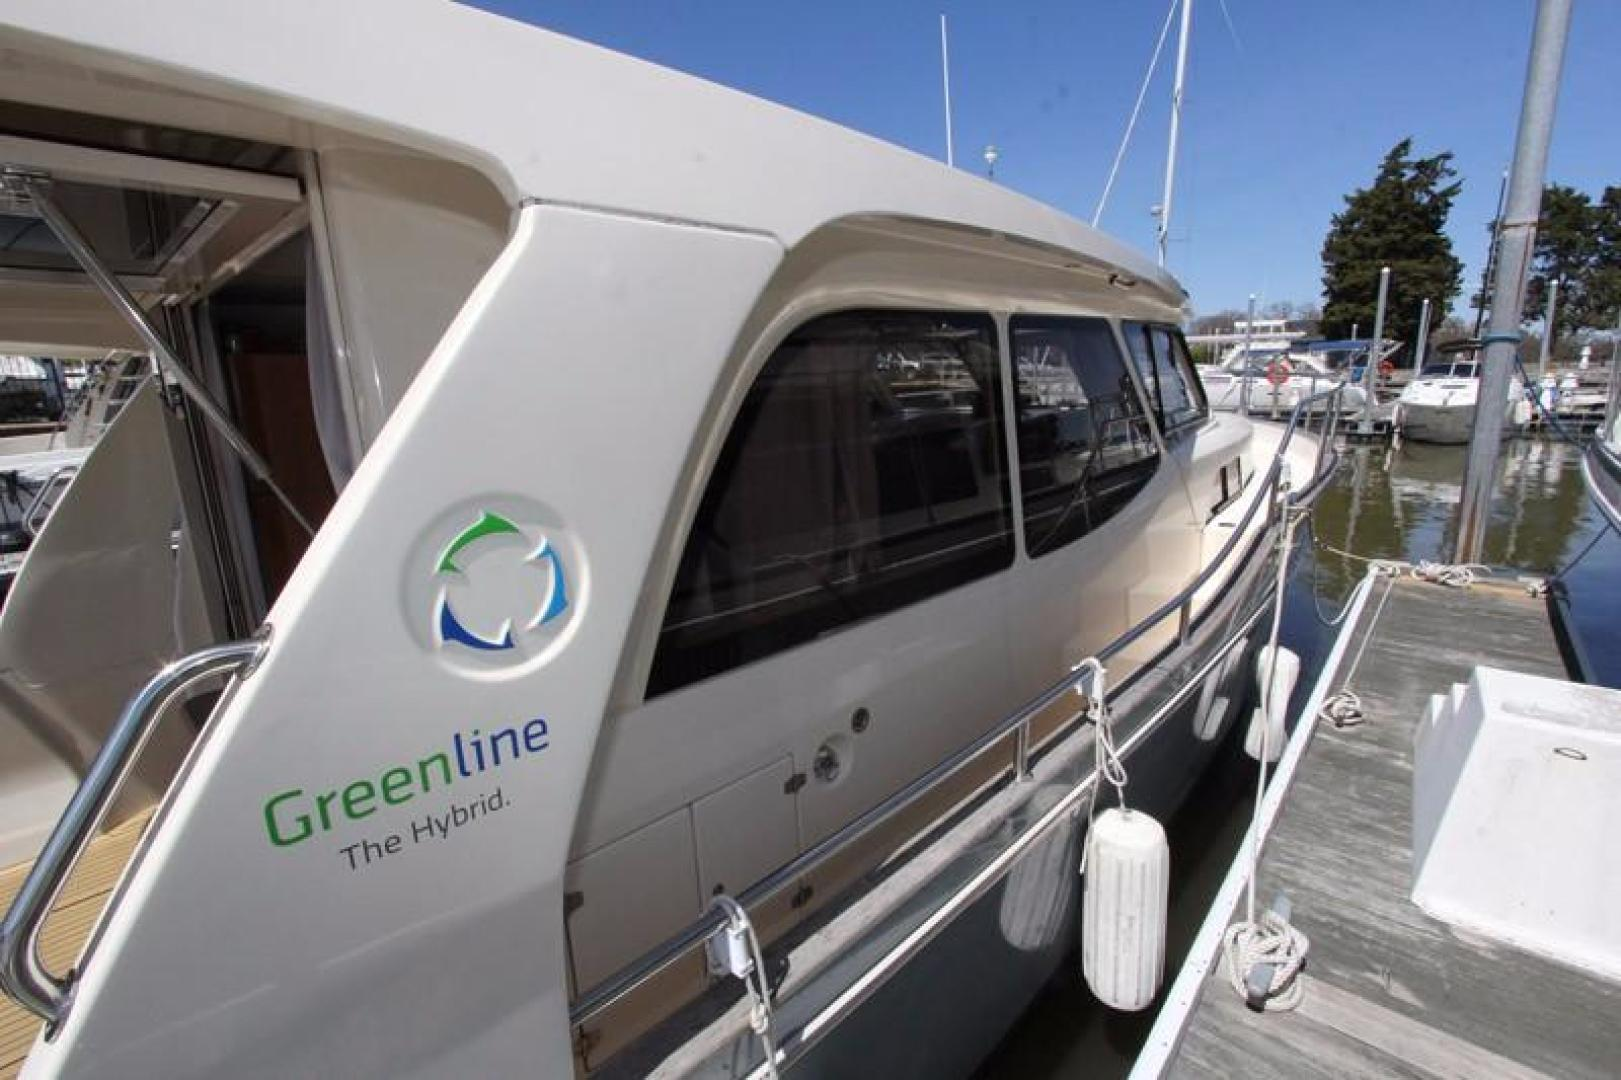 Greenline-33 300 2014-Inspiration Annapolis-Maryland-United States-Stbd Side Detail-923119 | Thumbnail